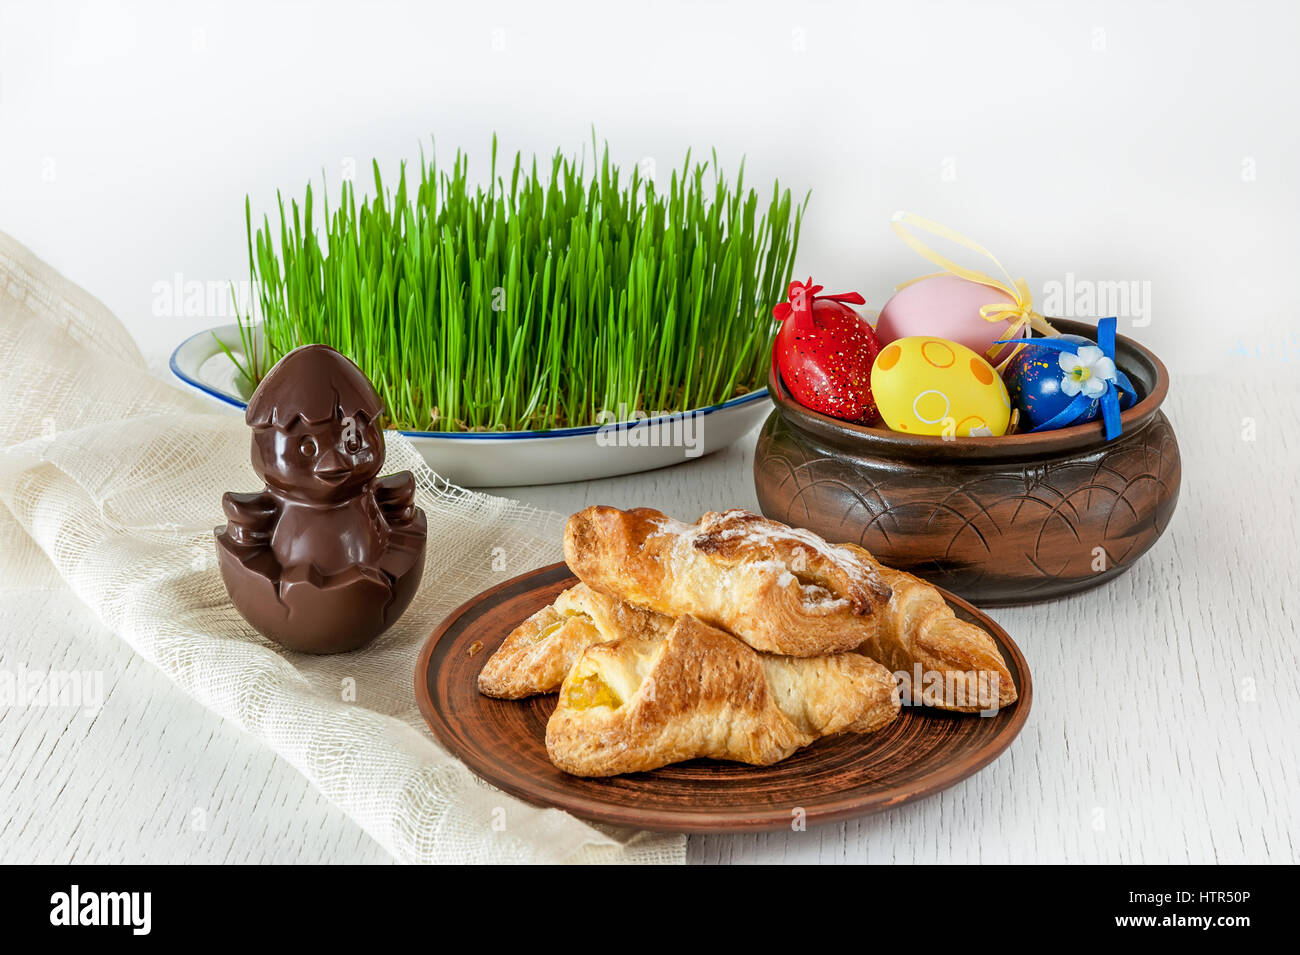 biscuits, sweet chocolate chick fresh green grass colored eggs in Easter songs - Stock Image